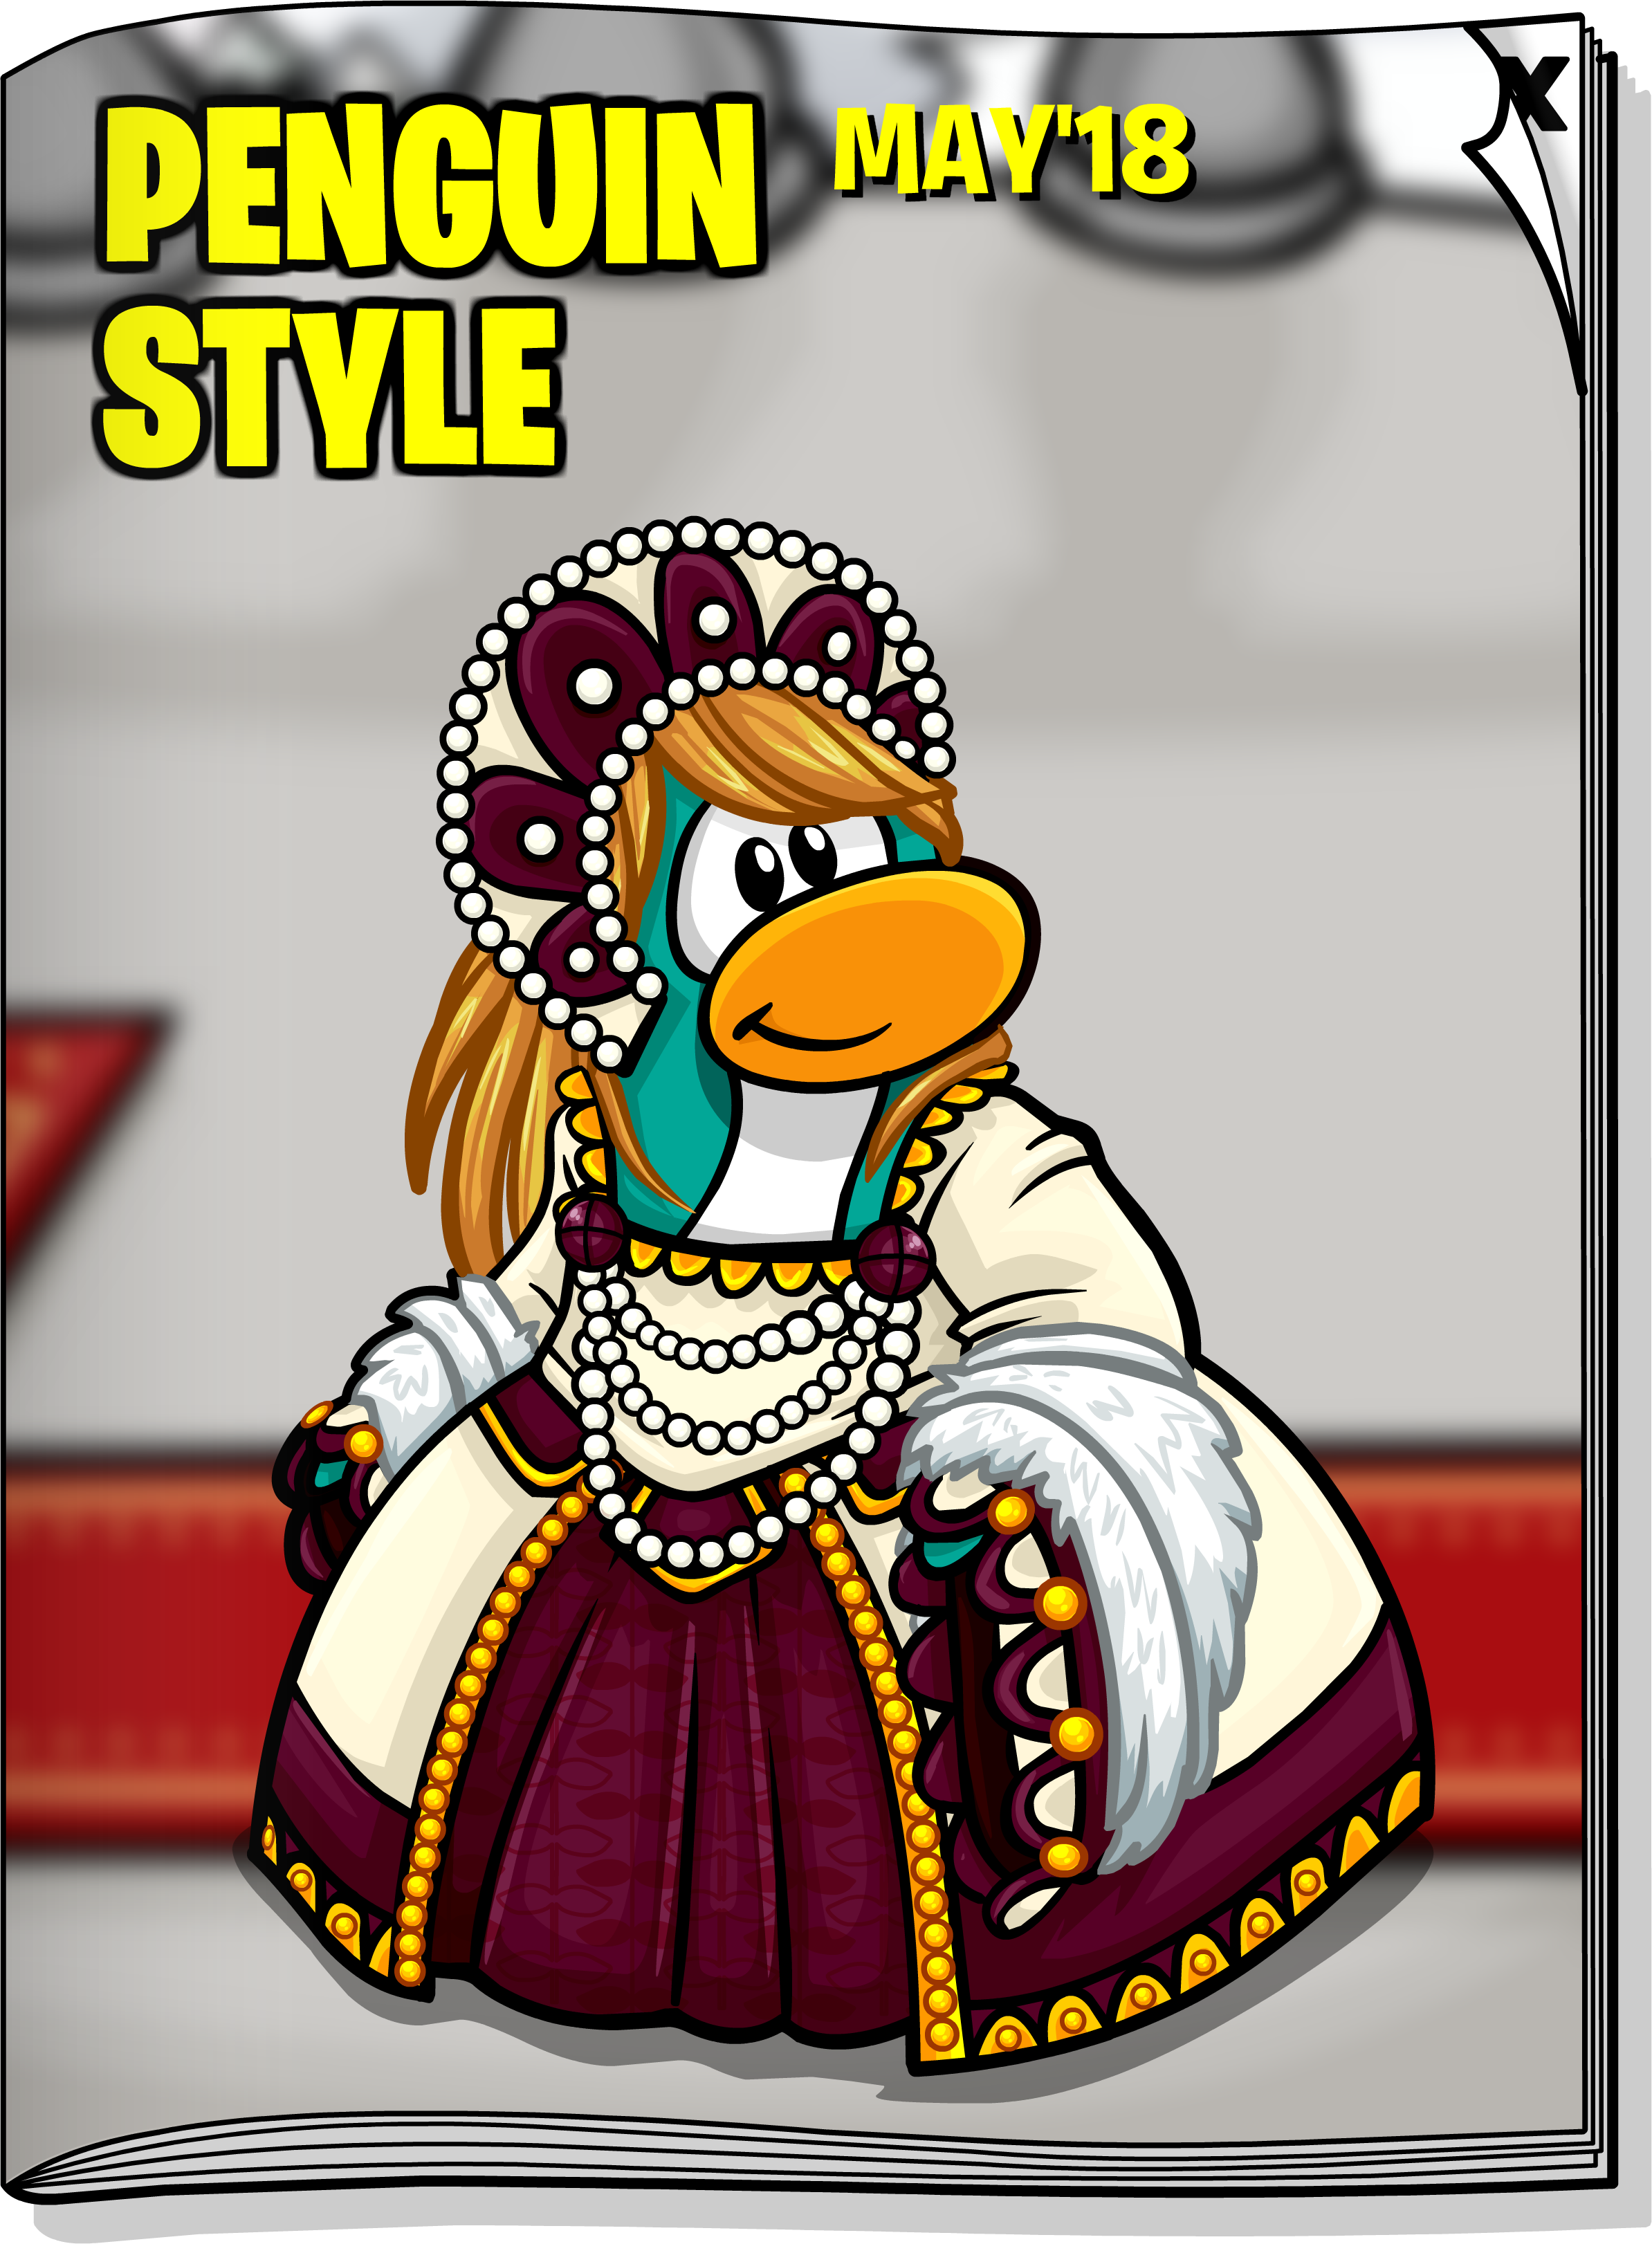 Penguin Style May'18